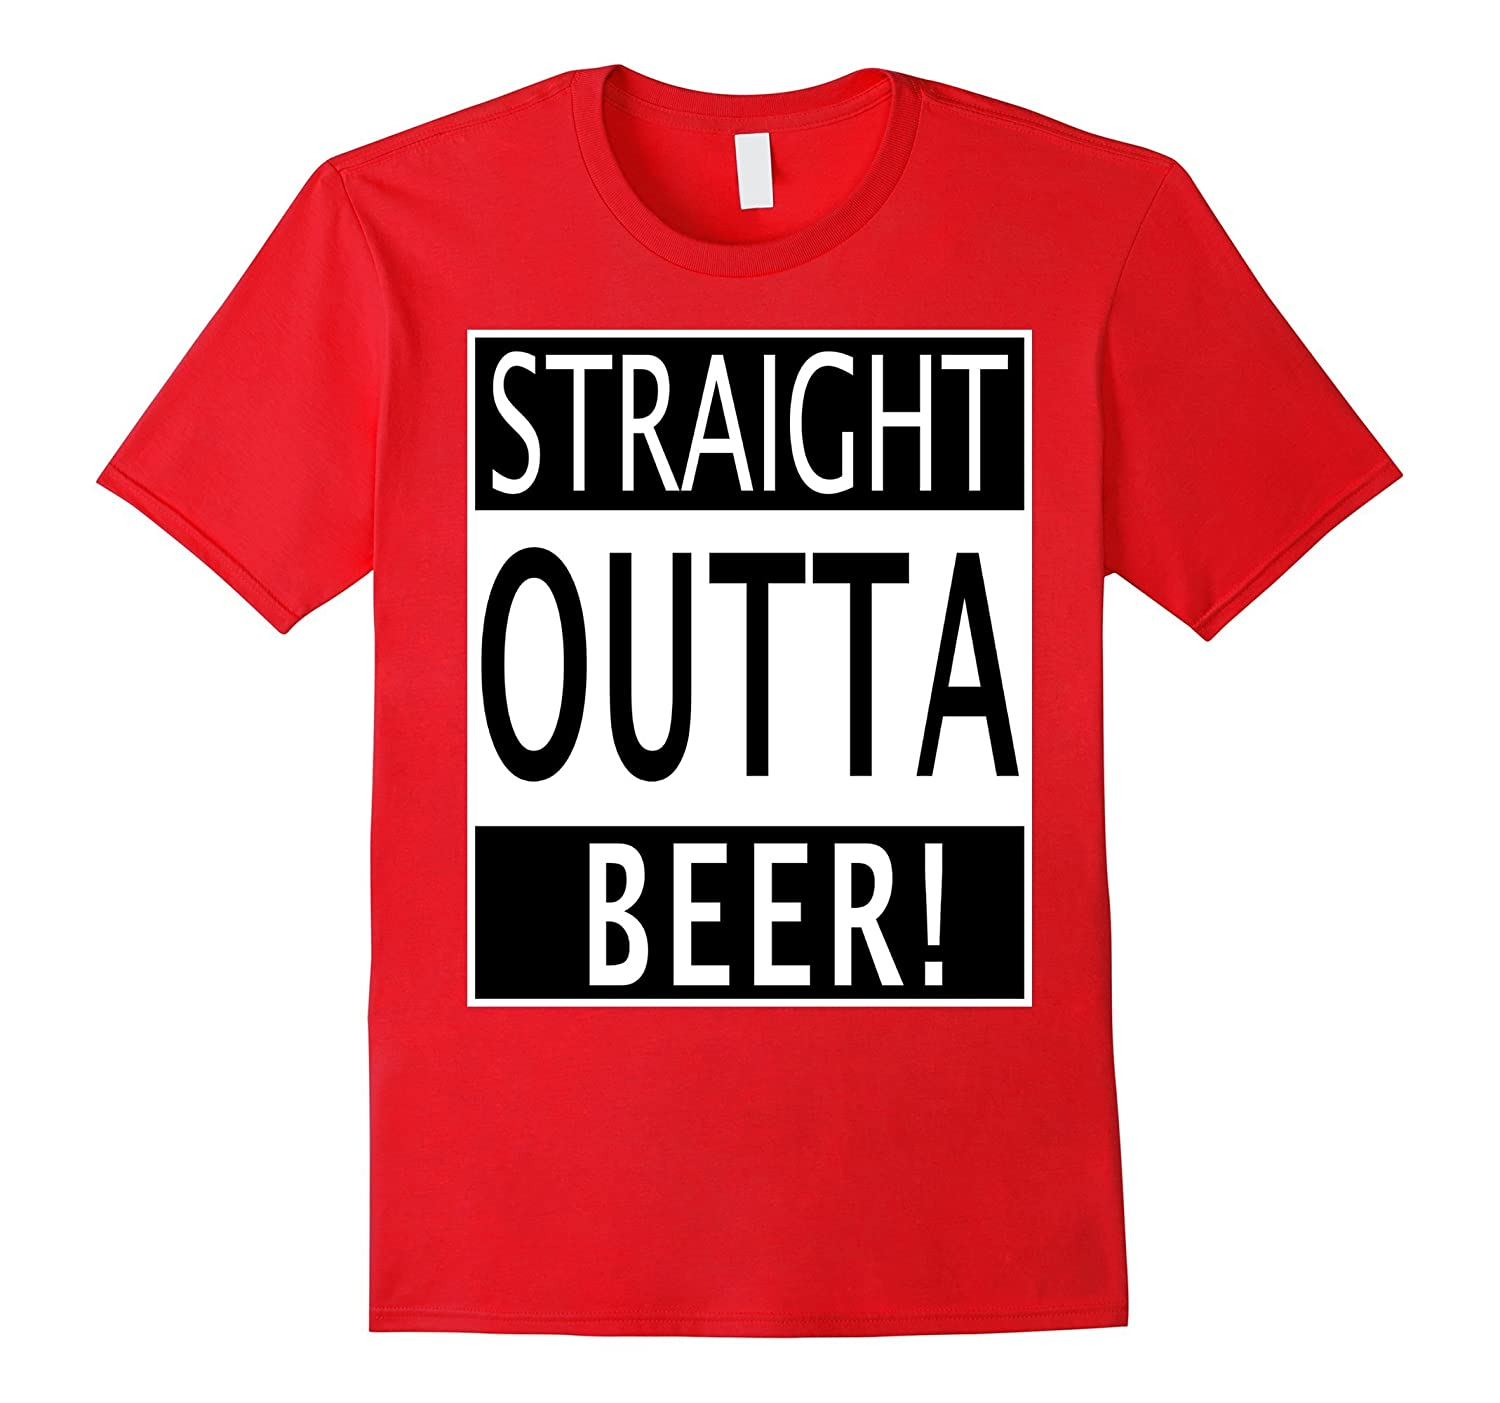 Straight Outta Beer Comedy Tee Shirt for Alcoholics, Hipster-FL